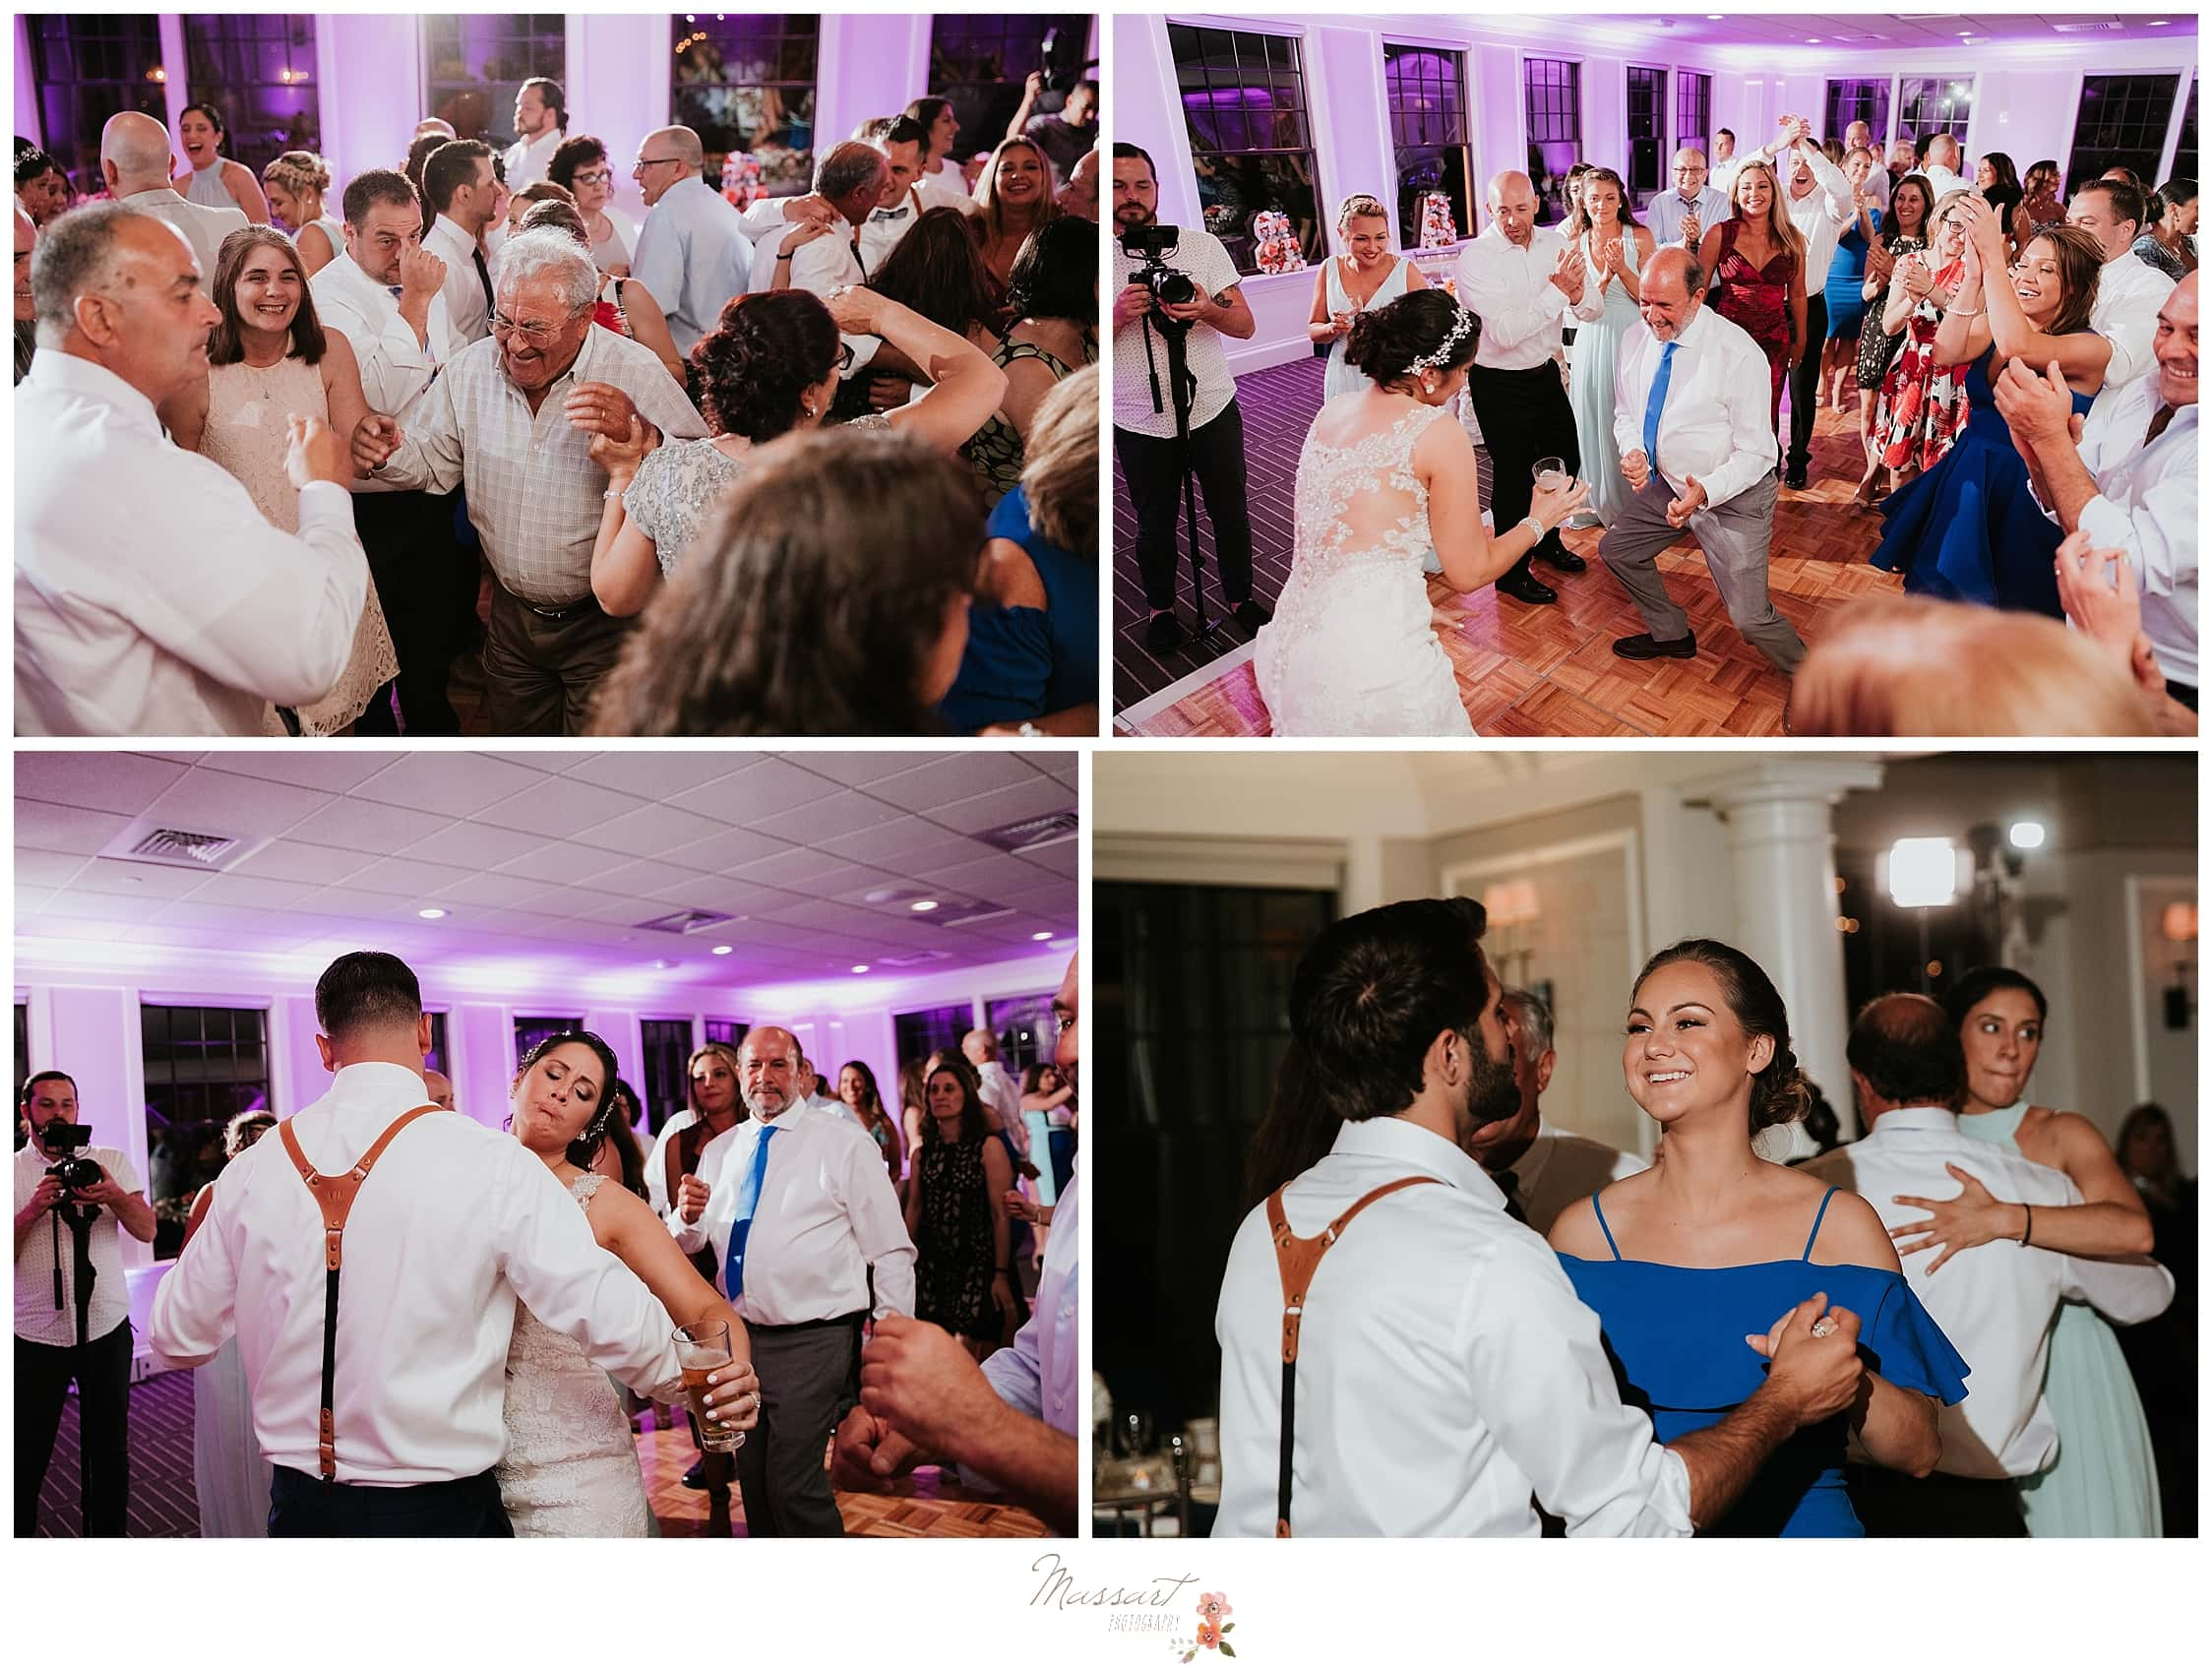 Bride and groom dnace with wedding guests photographed by Massart Photography, RI based wedding photographers.